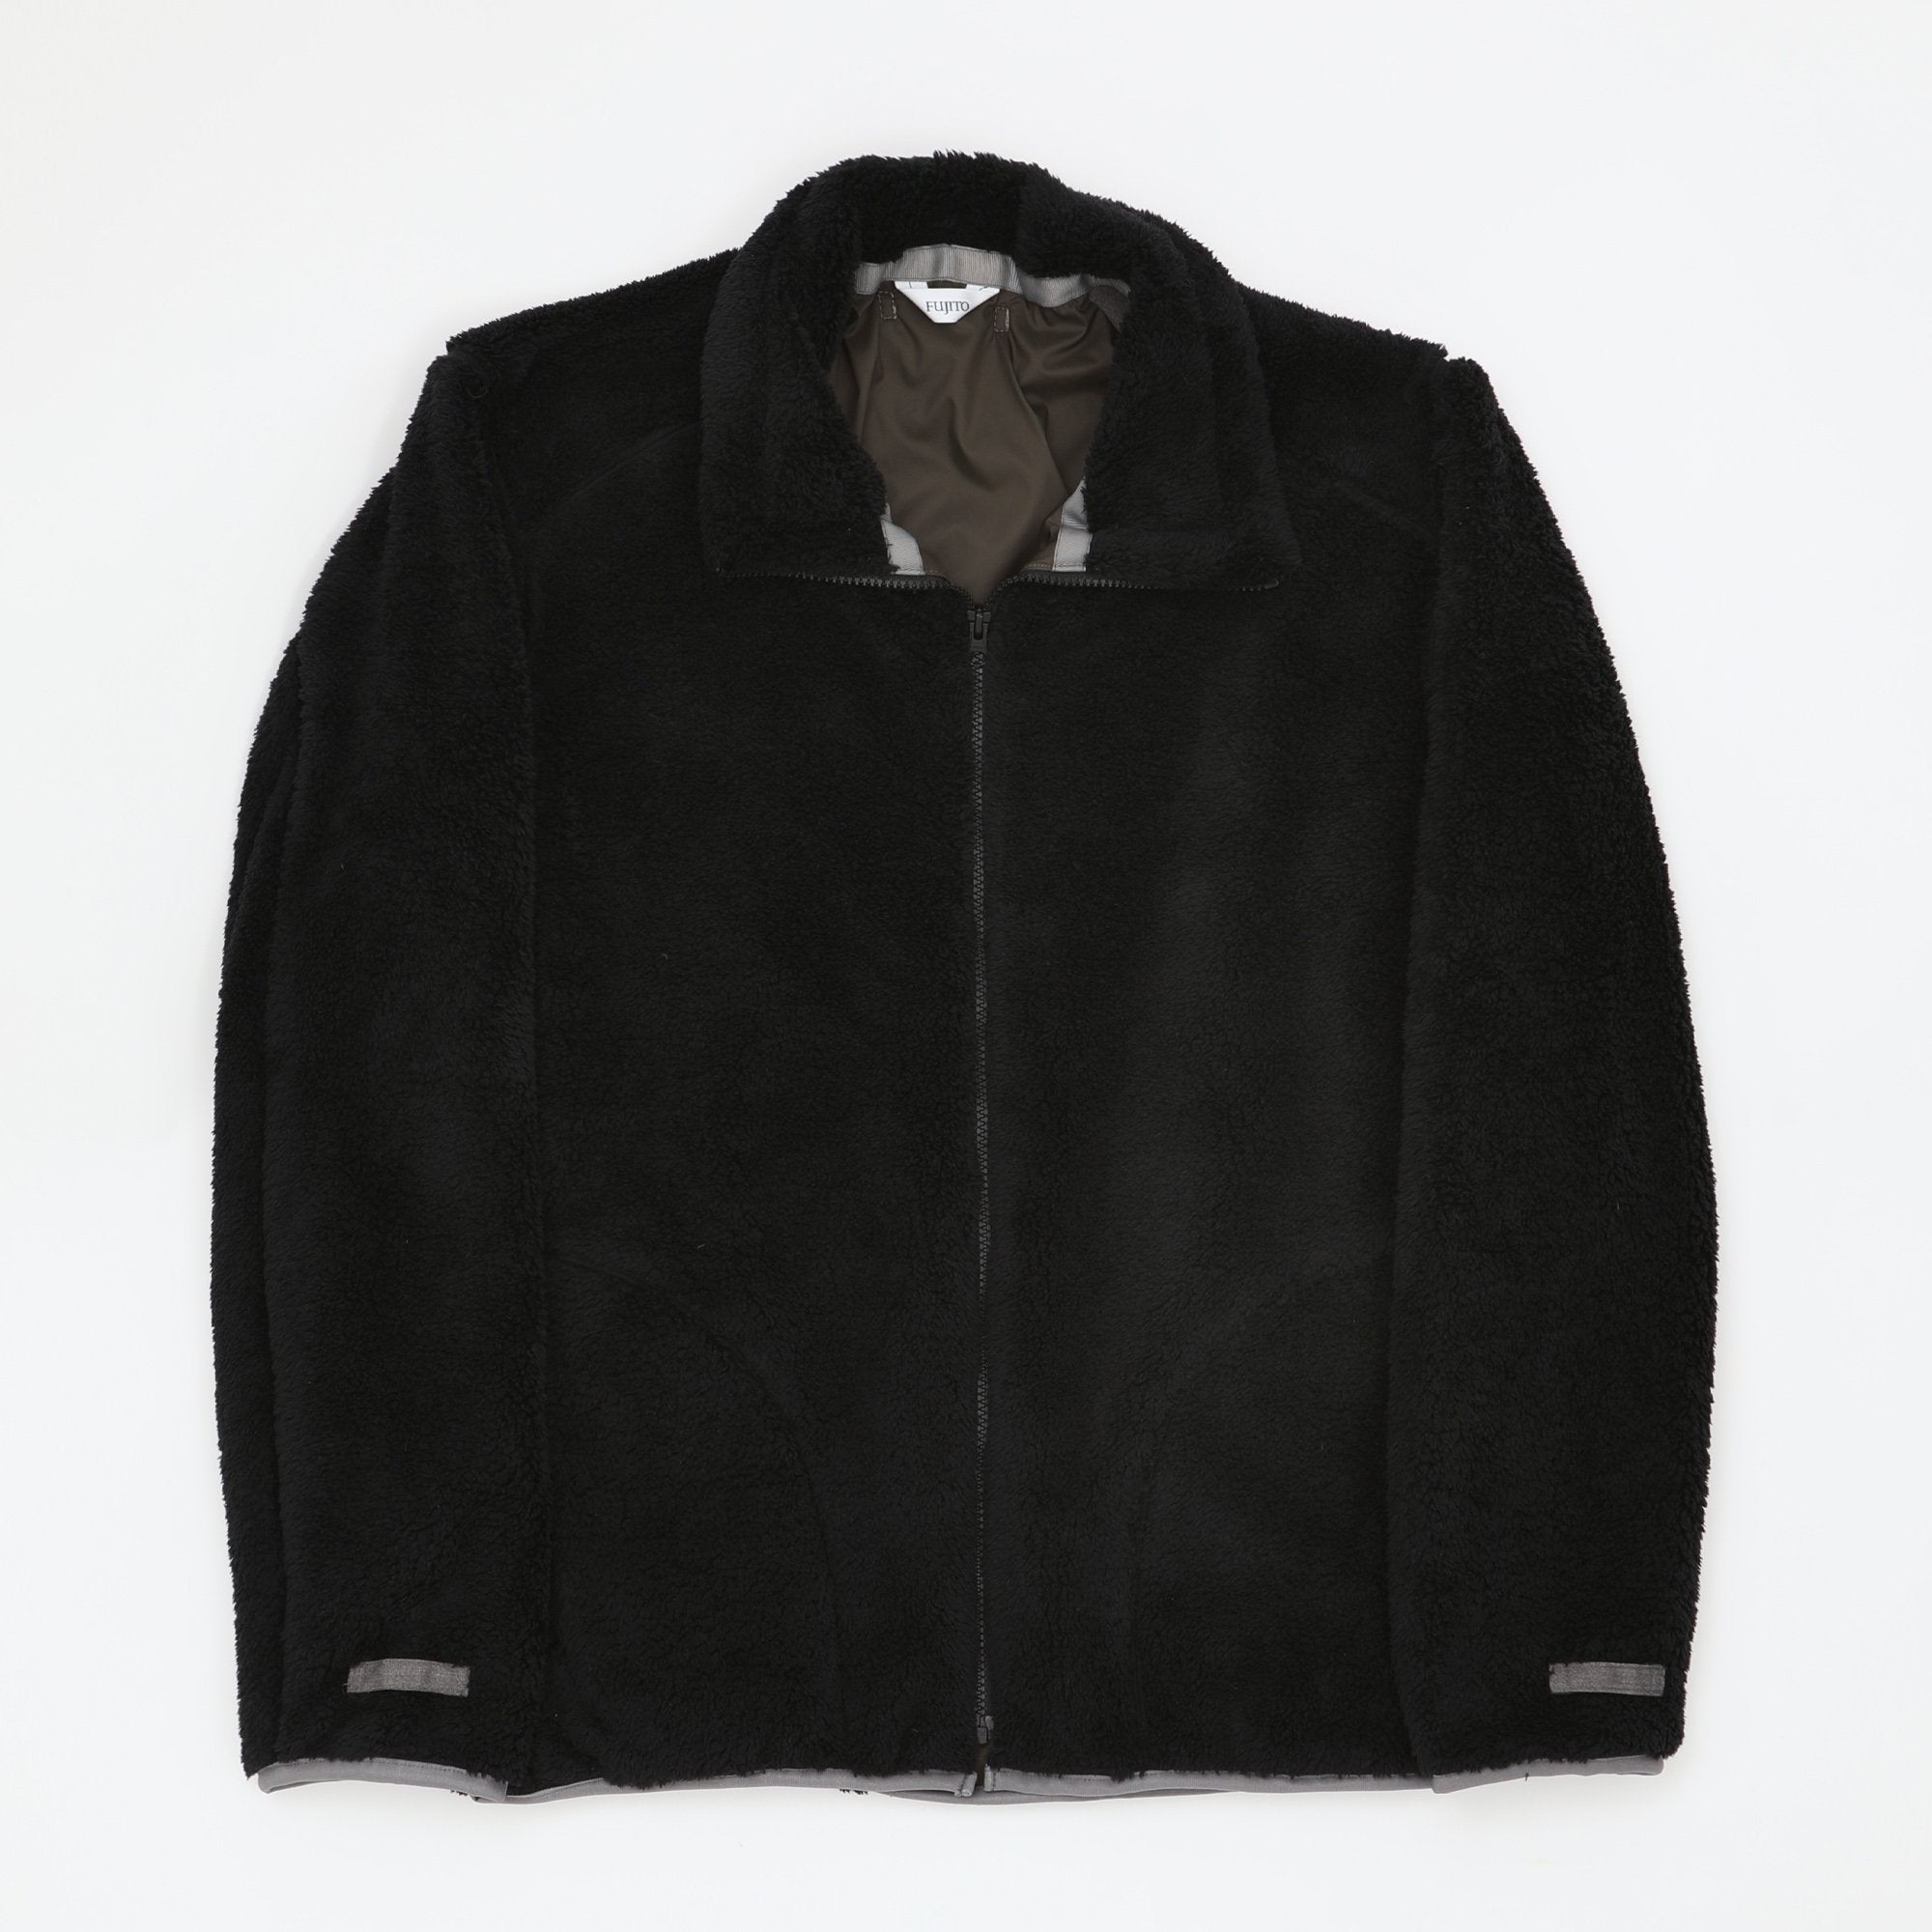 fujito-fleece-blouson-black-202-sunnysiders.jpg